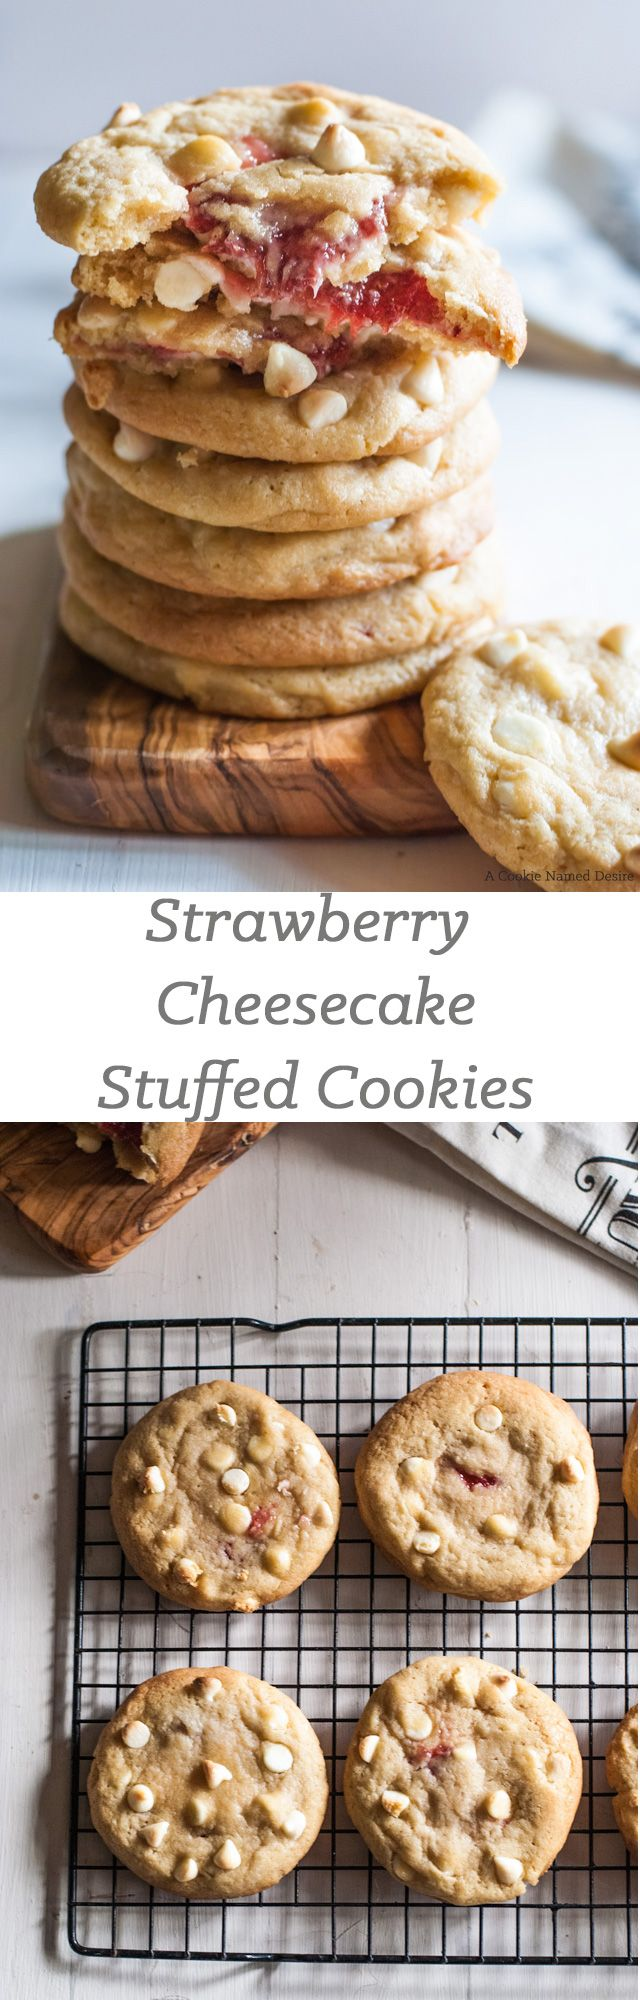 Strawberry cheesecake stuffed cookies. These will be your new favorite cookie to munch on. Crispy edges, chewy middle, and gooey strawberry cheesecake